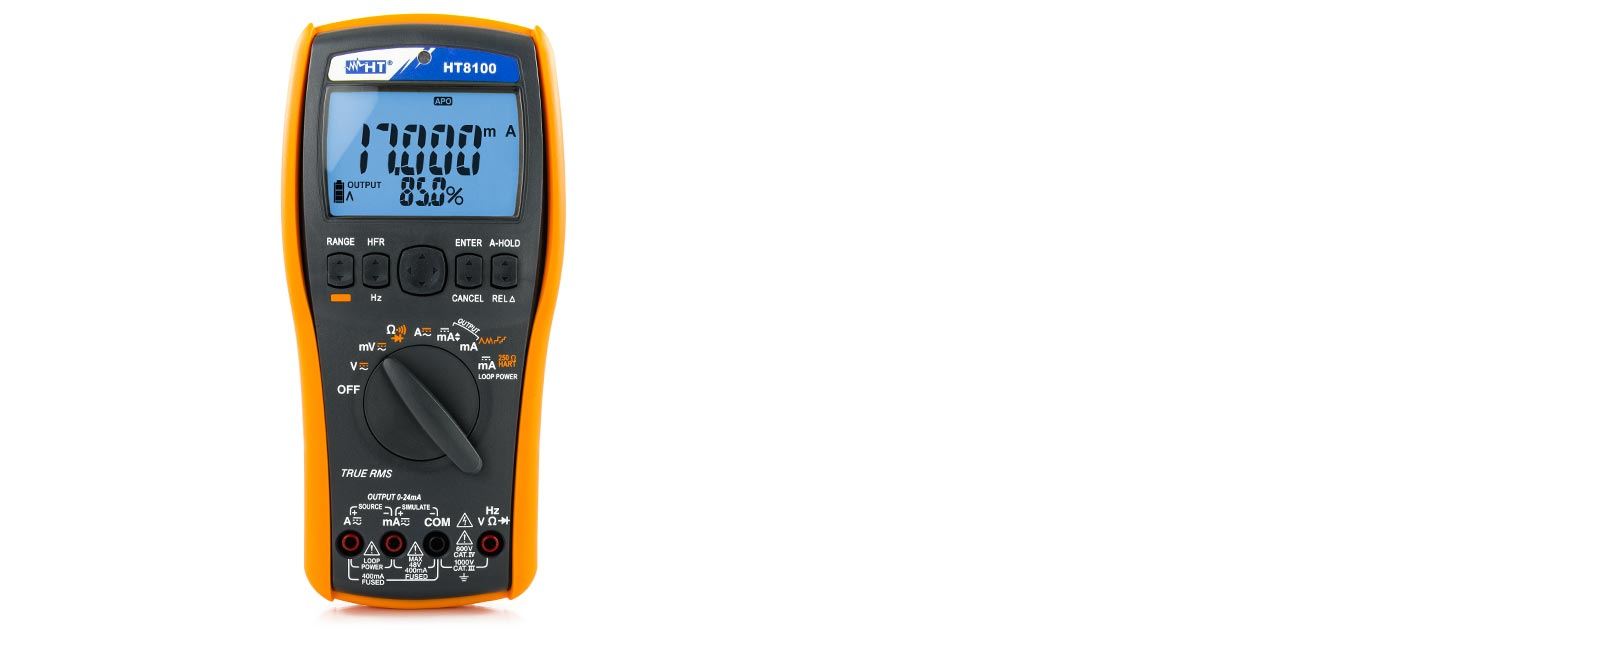 HT8100, Digital Multimeters, TRMS